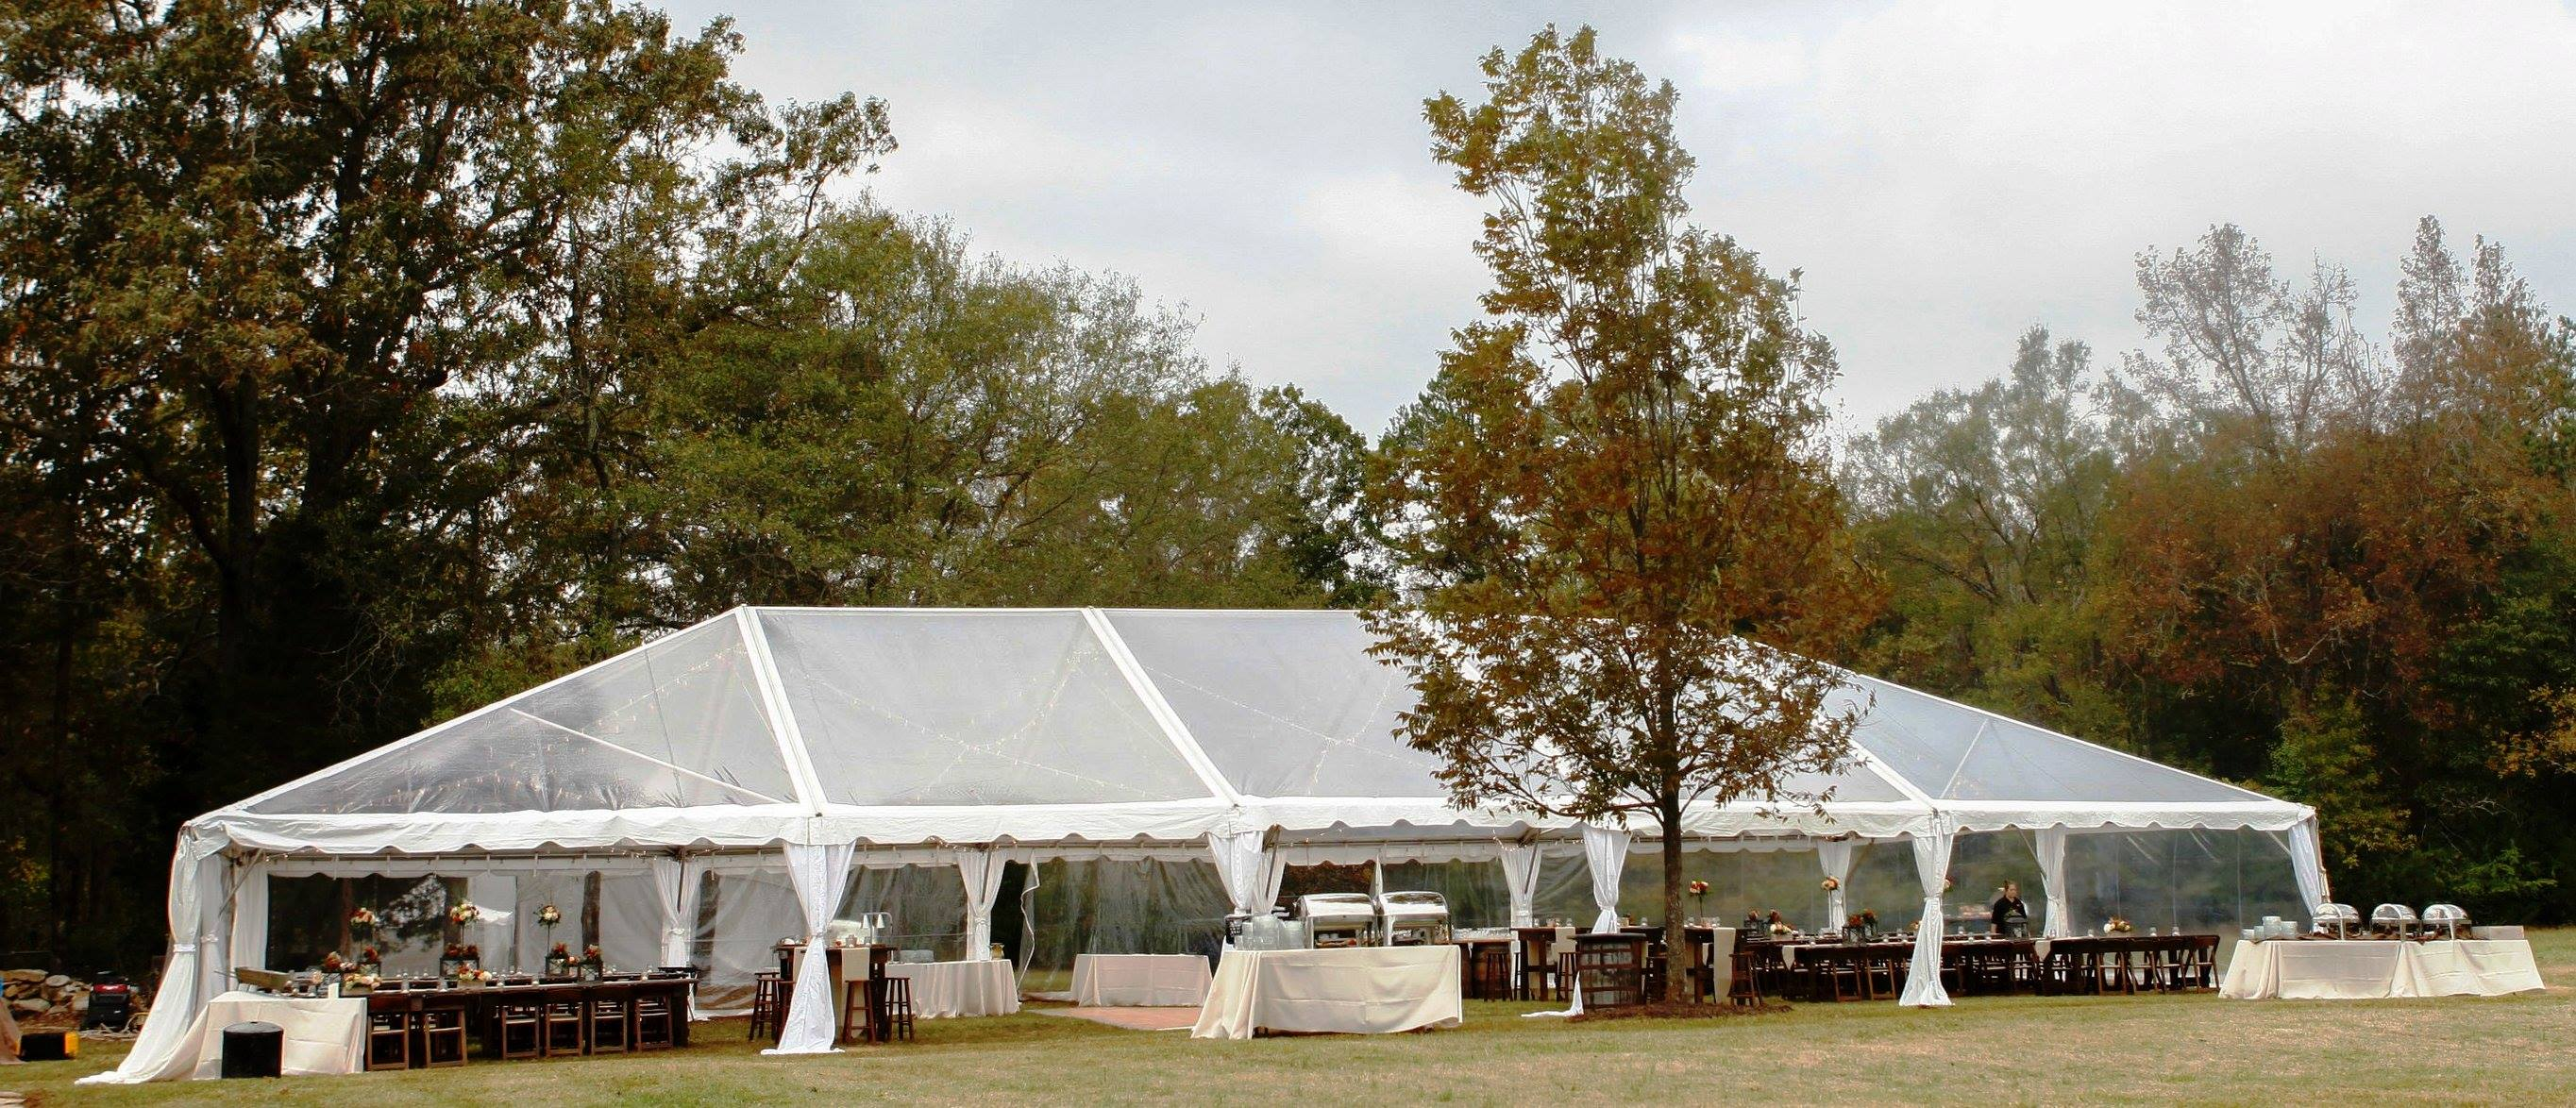 40 Clear Traditional Frame Tent Professional Party Rentals